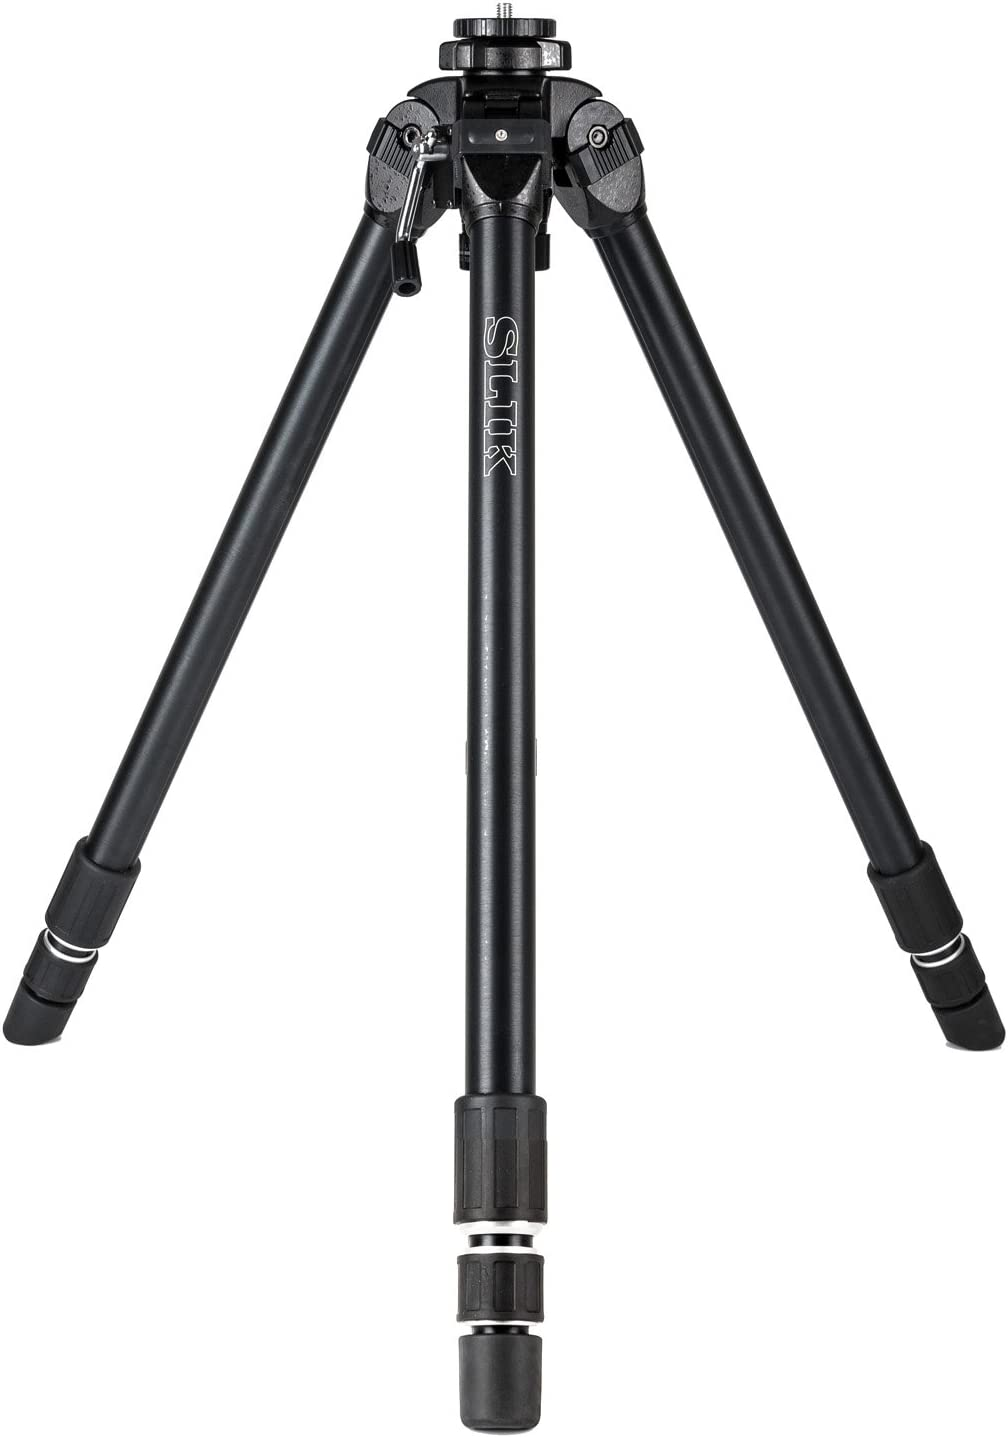 SLIK The Professional Tripod Legs, for Mirrorless/DSLR Sony Nikon Canon Fuji Cameras and More - Black (619-950)